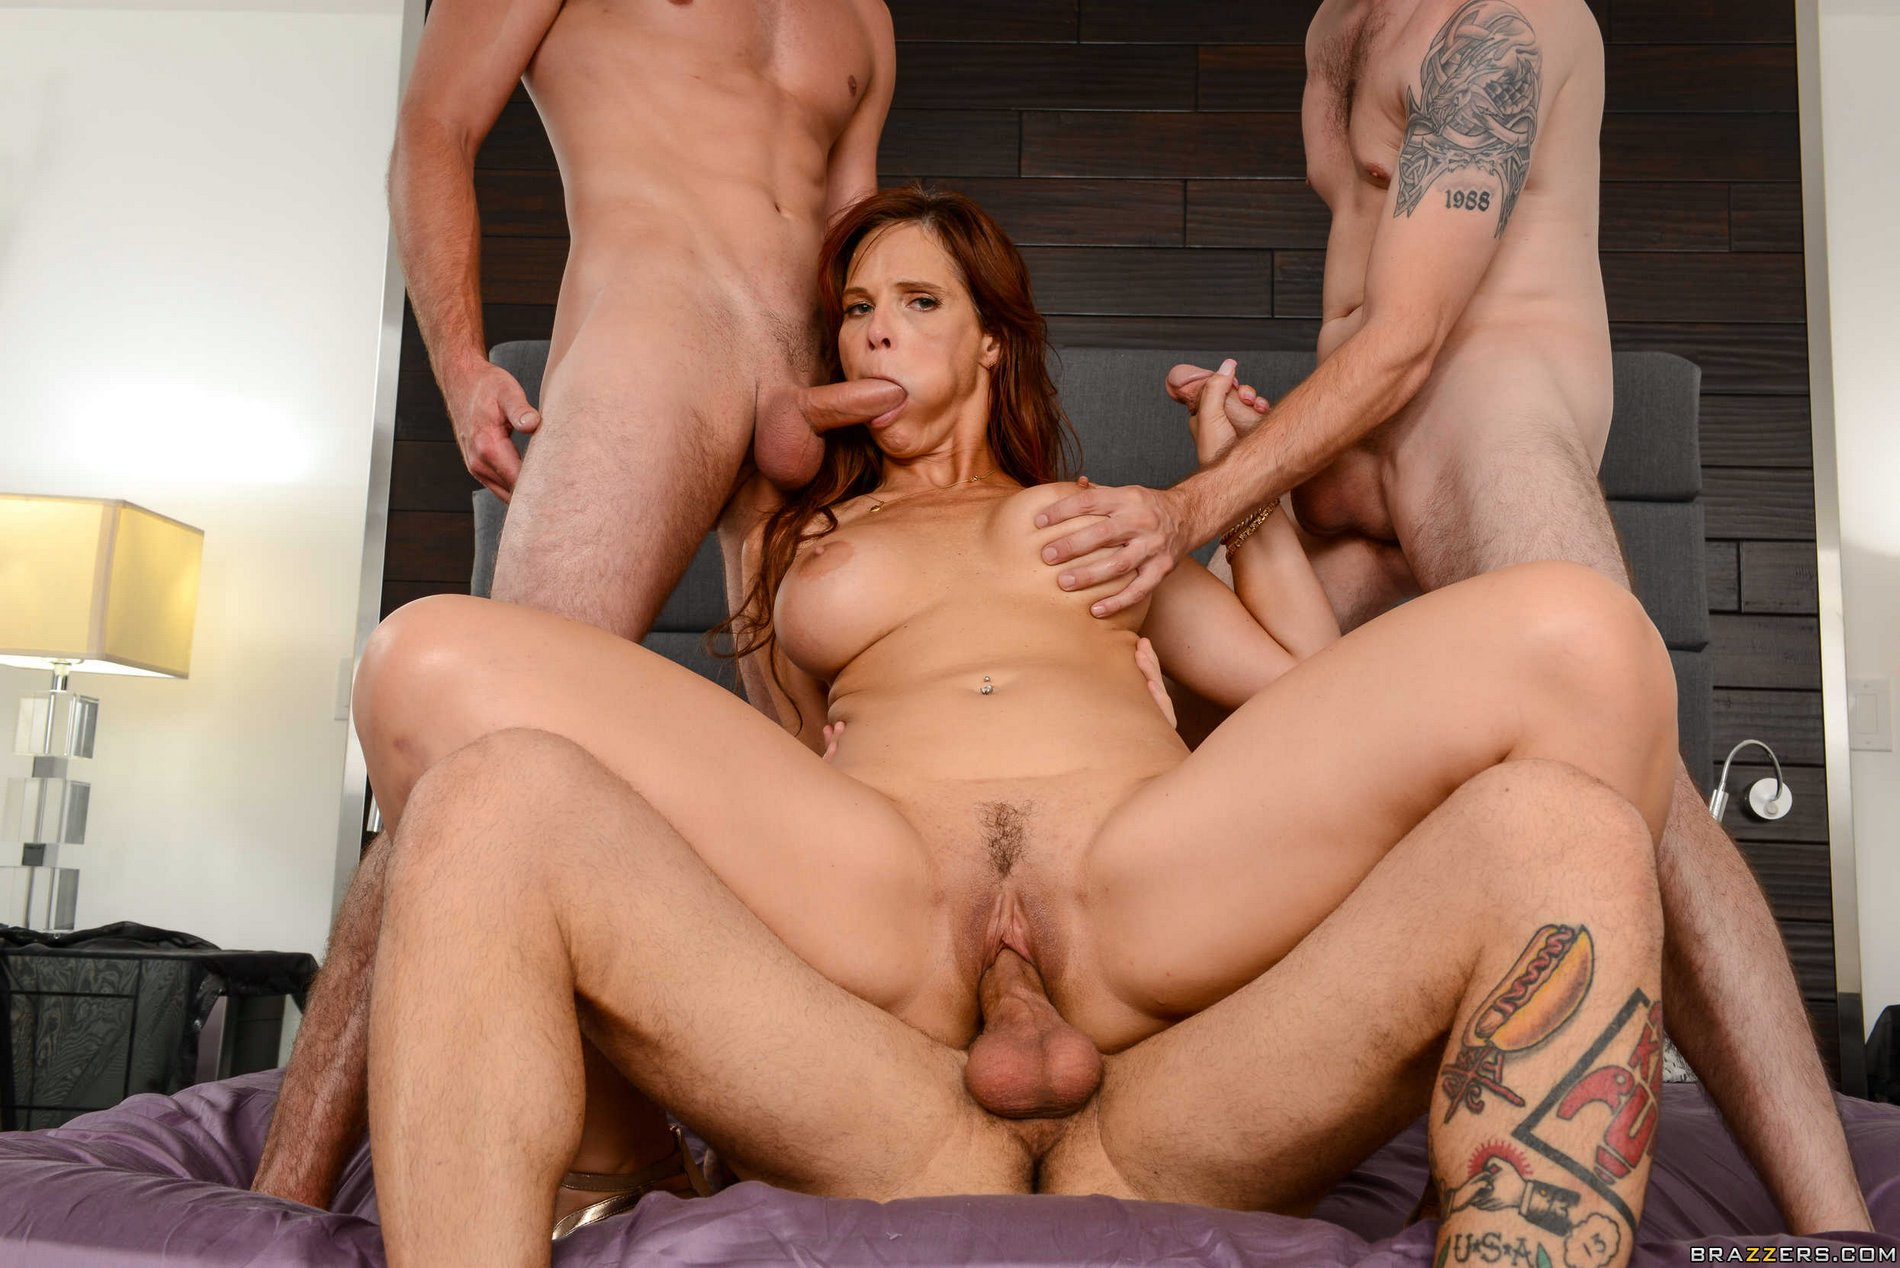 Aubrey milf fucking three at once you nice/cock.I/love/your/big/cock:)